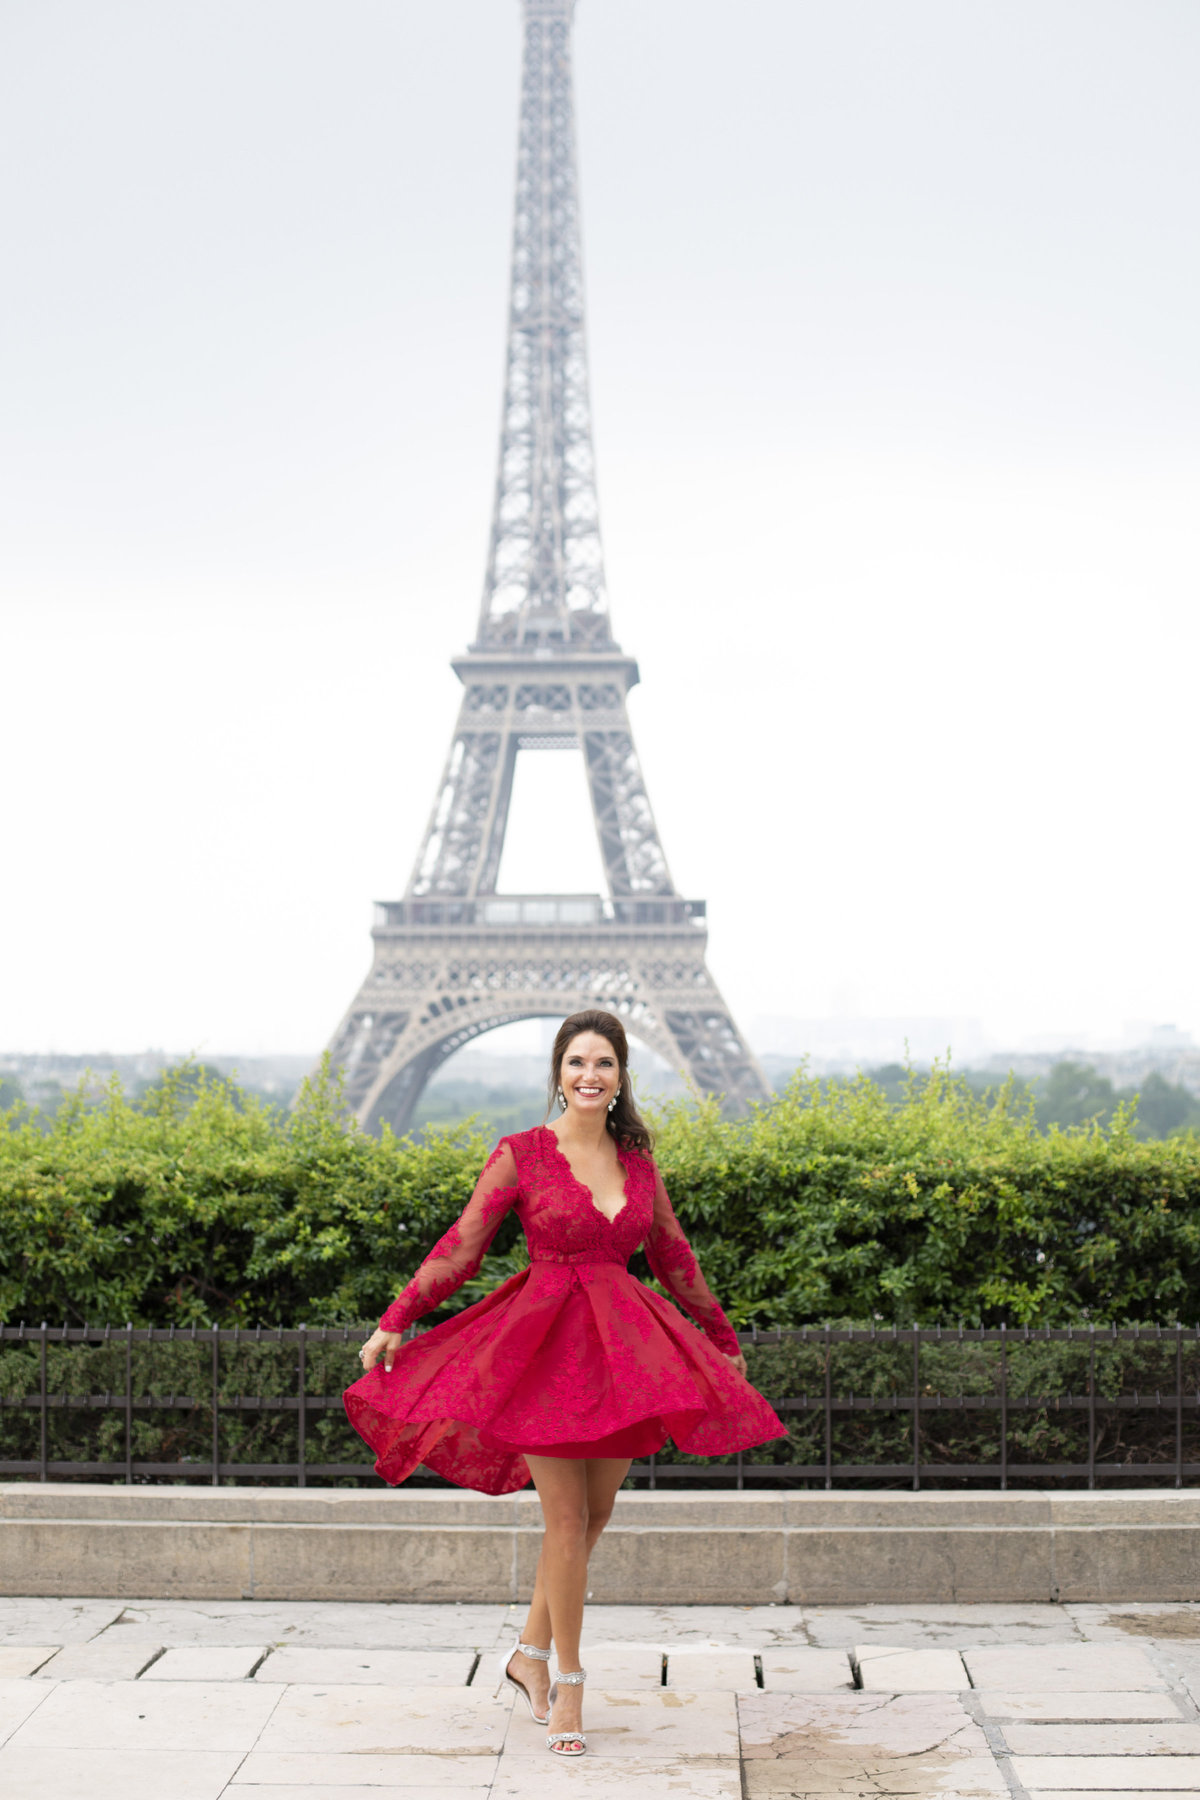 Beautiful woman in red dress spins in front of Eiffel Tower 49